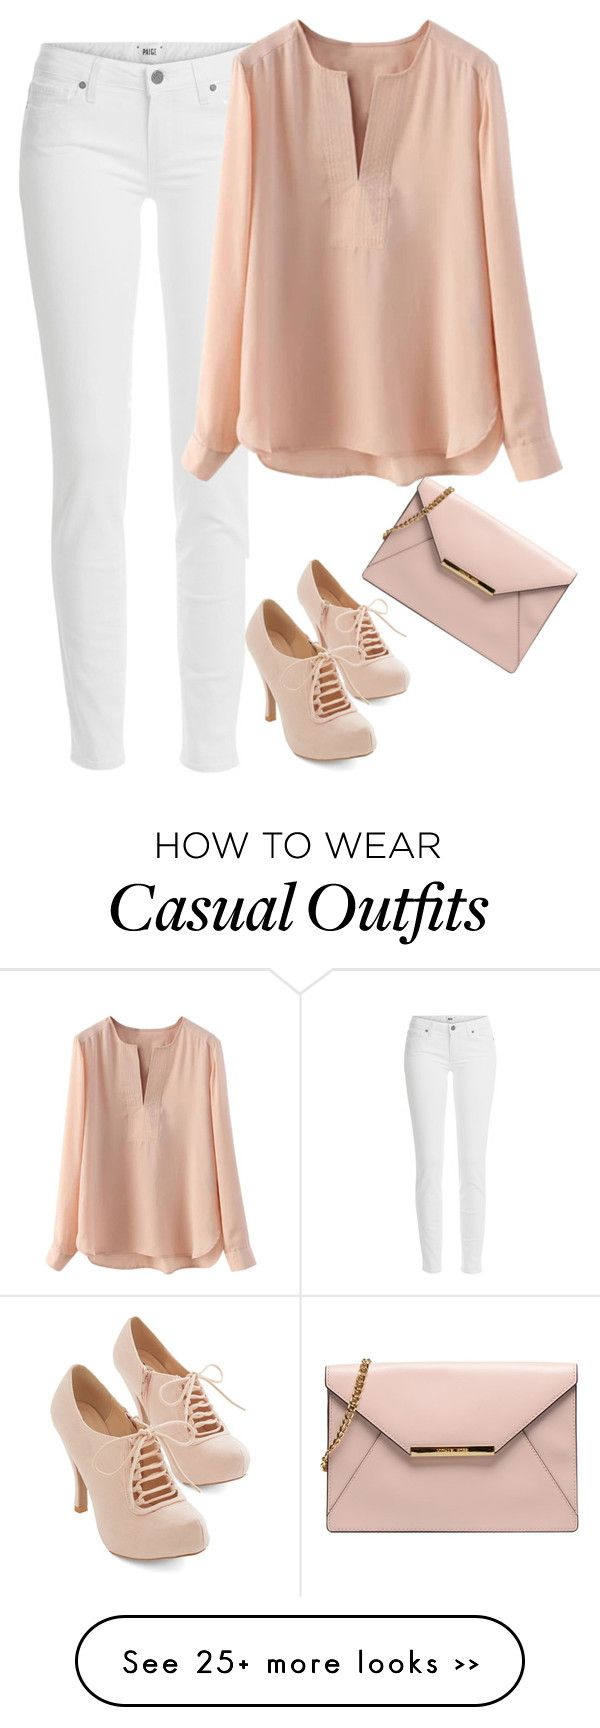 """Casual College Outfit"" by cloudybooks on Polyvore"